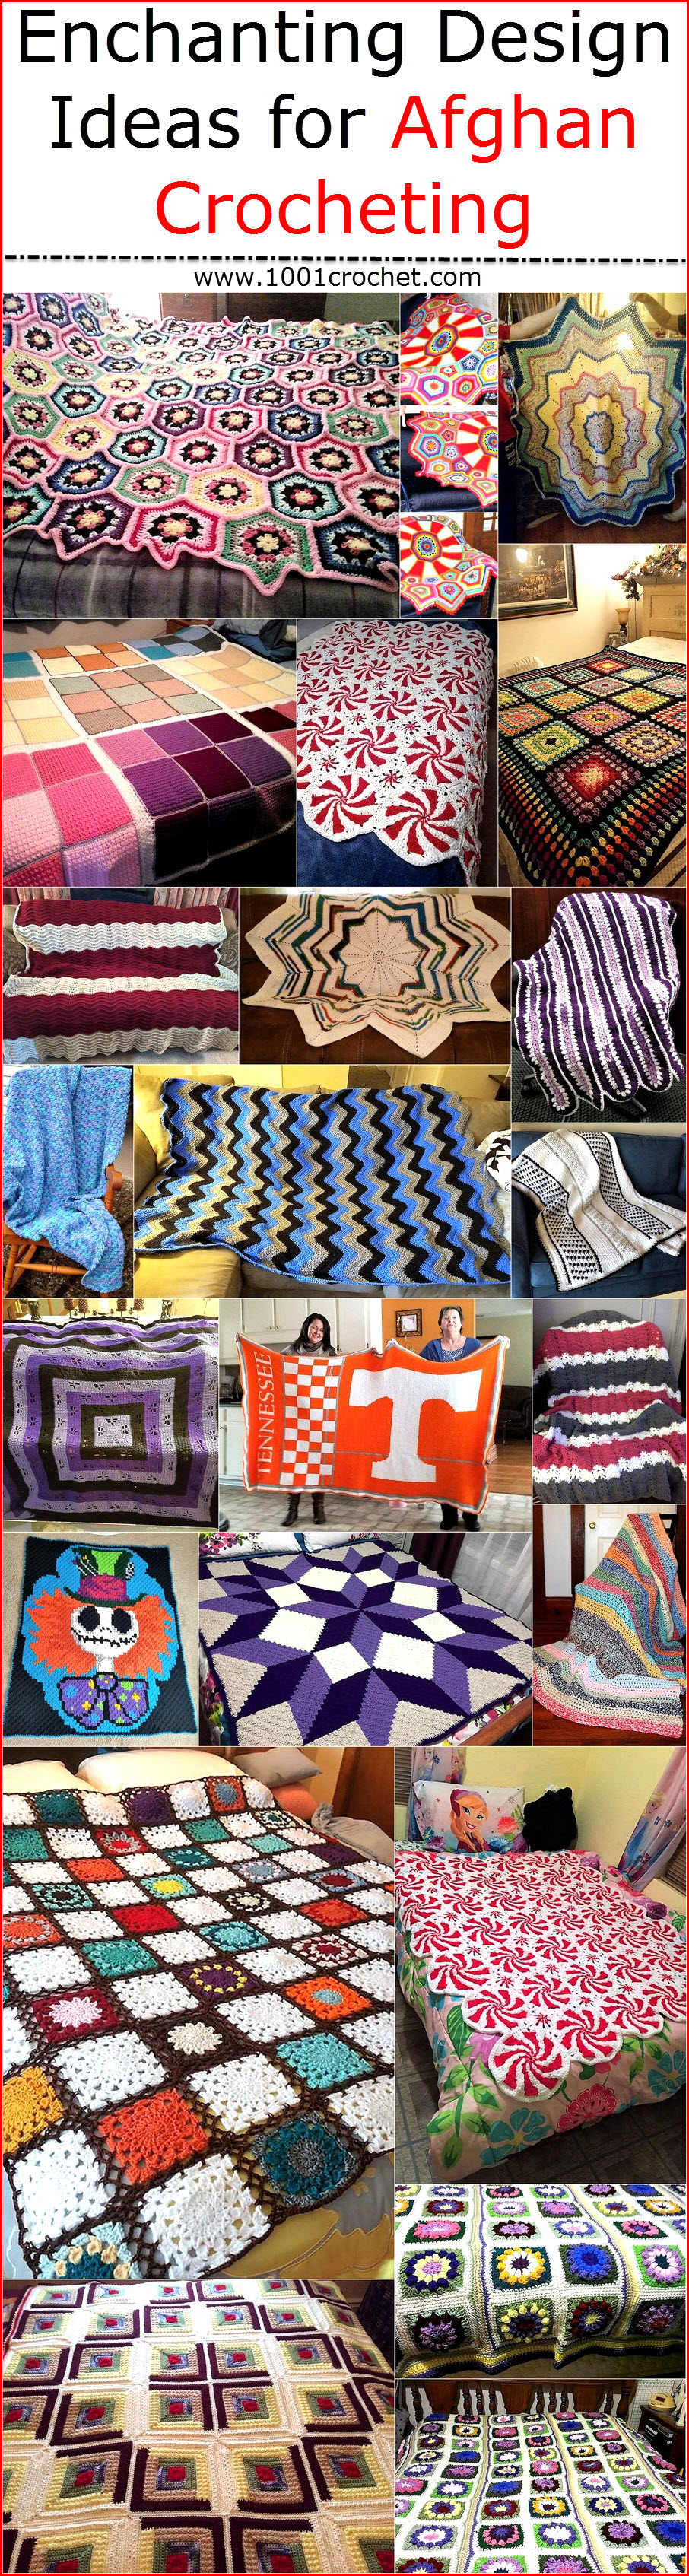 enchanting-design-ideas-for-afghan-crocheting